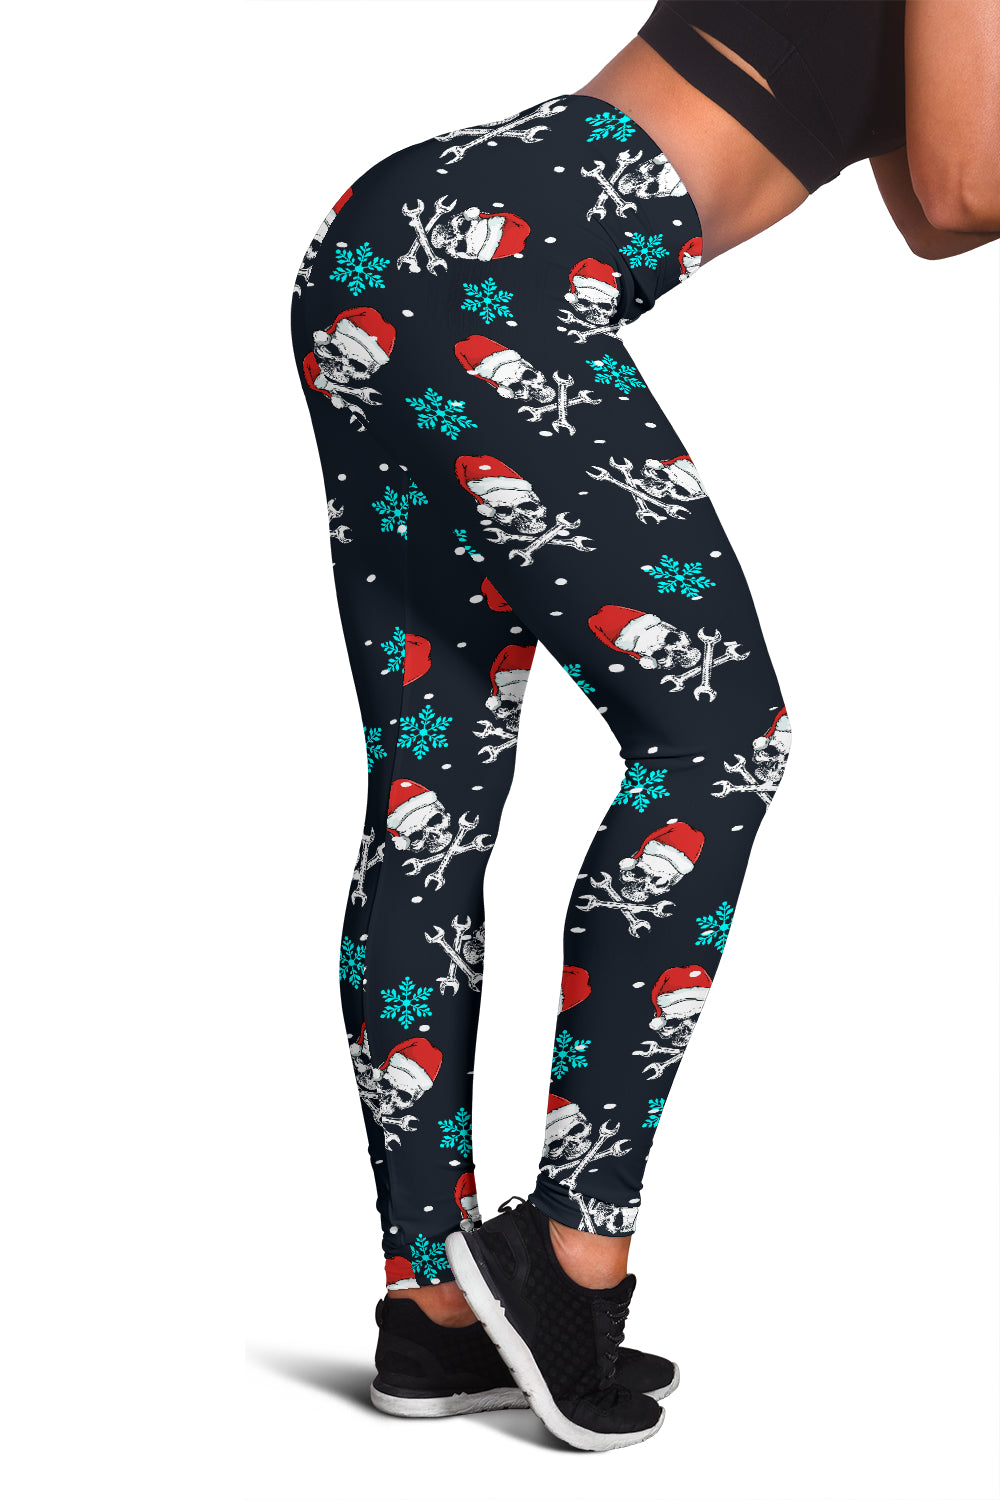 Mechanic Santa Skull Xmas Leggings